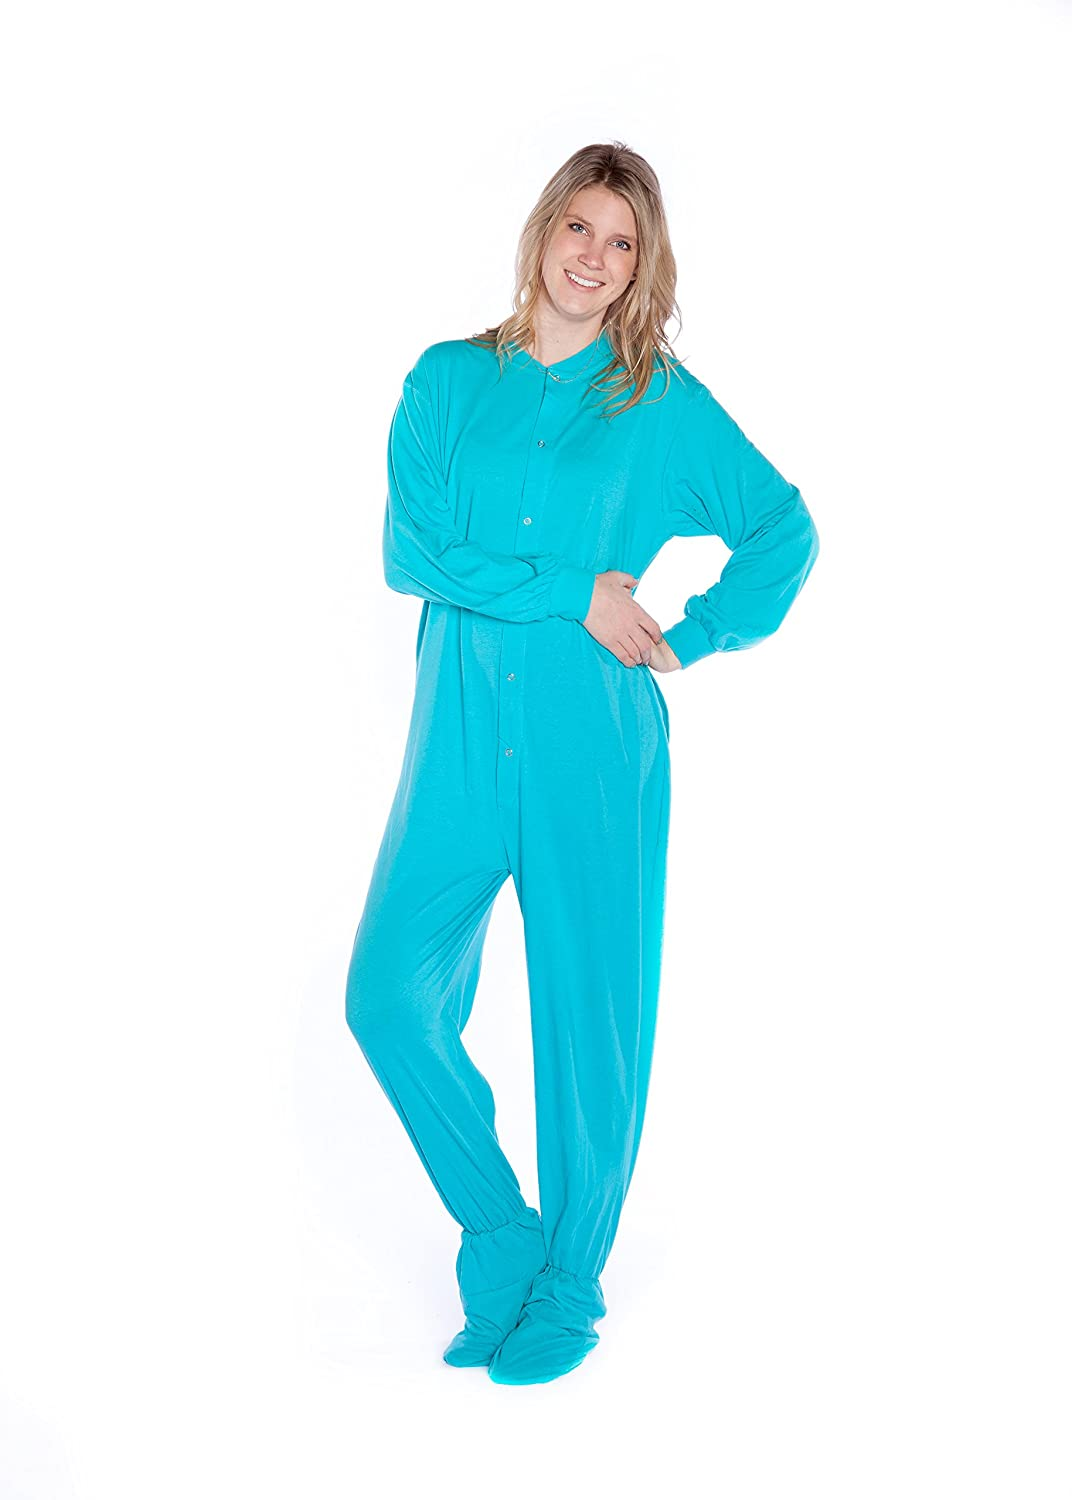 BIG FEET PAJAMA CO Turquoise Jersey Knit Adult Onesie Footed Pajamas for Men /& Women